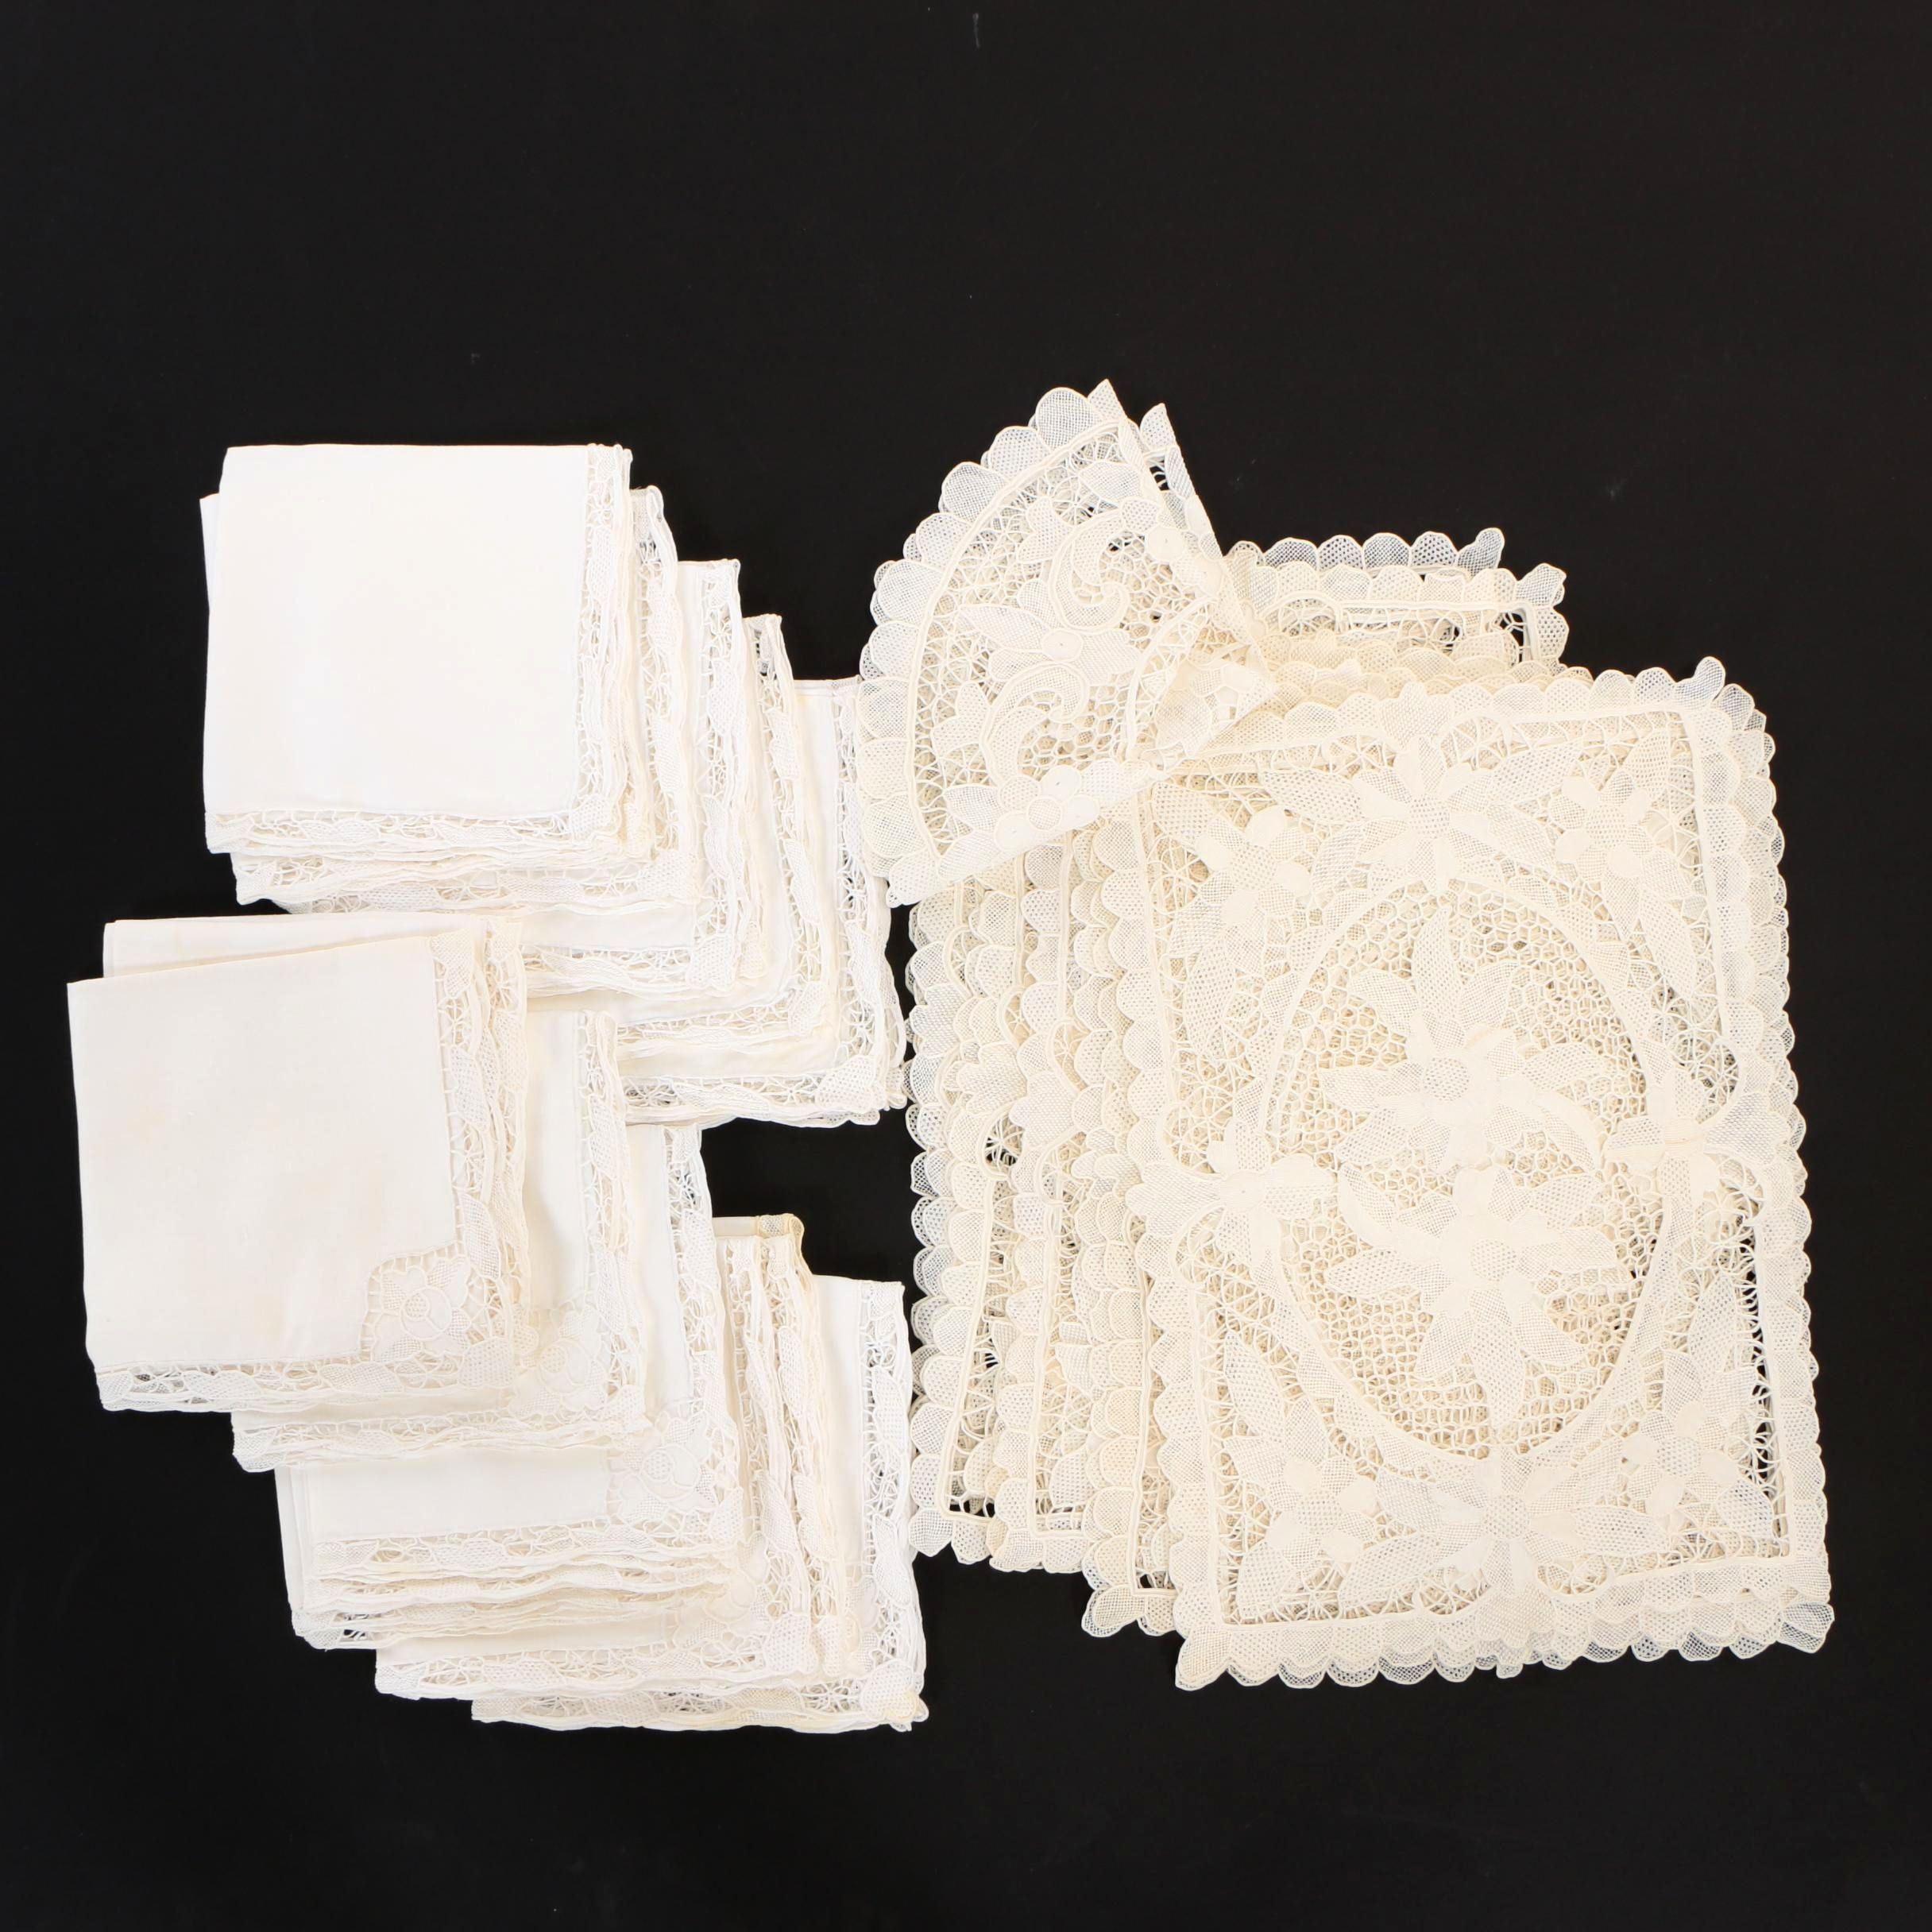 Needle Lace Embroidered Placemats and Napkins, Vintage